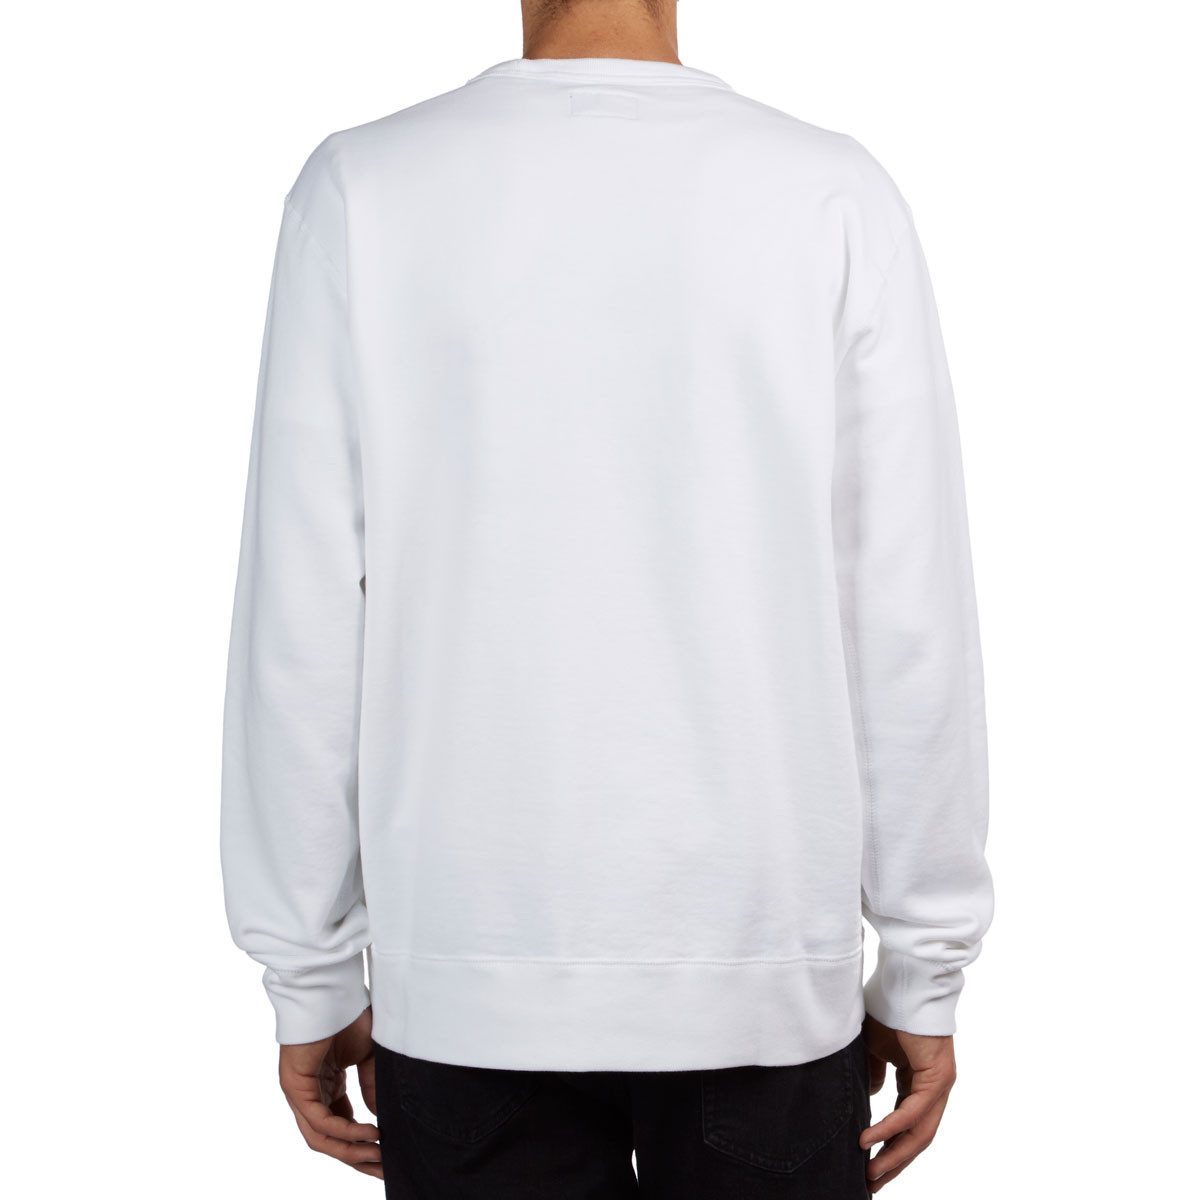 Converse X Golf Le Fleur Essentials Crew Sweatshirt White